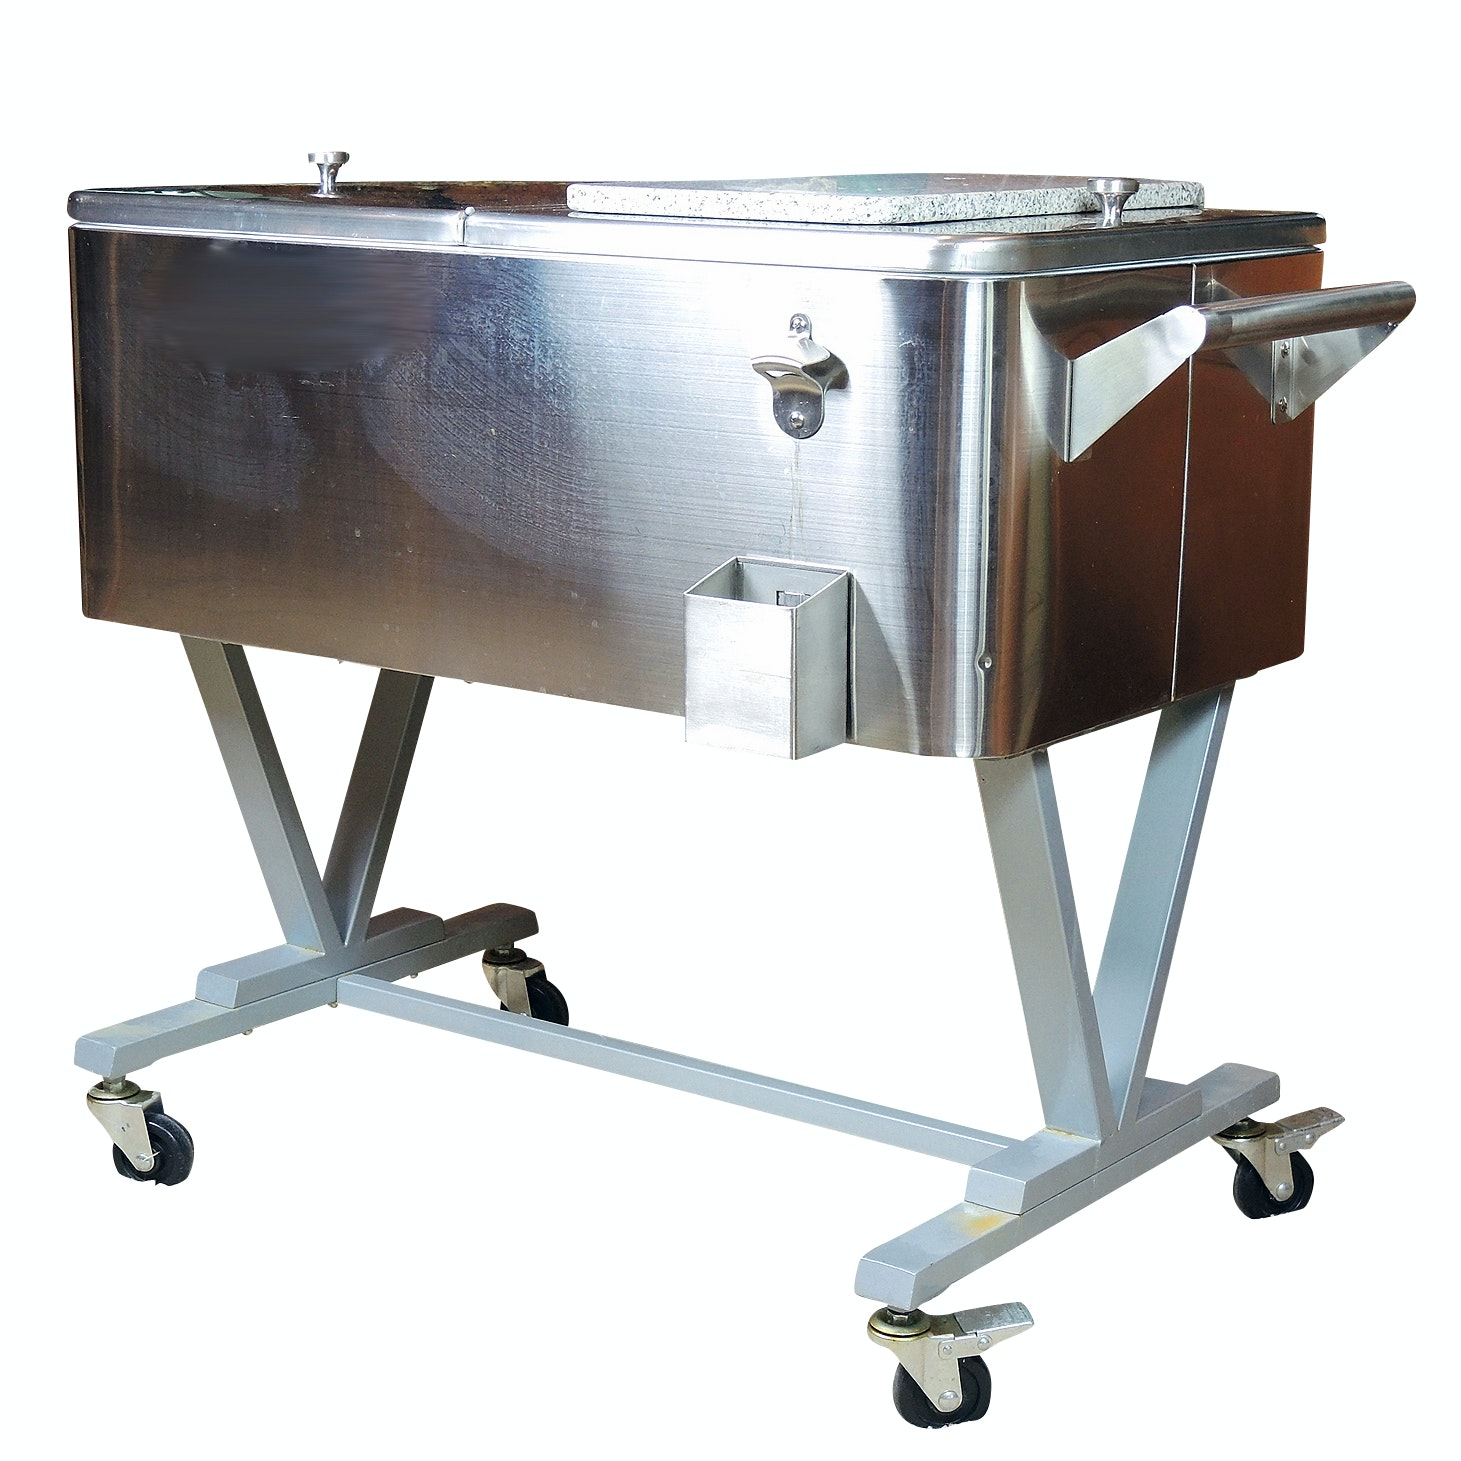 Stainless Upright Cooler Attributed to Frontgate with Granite Cutting Board